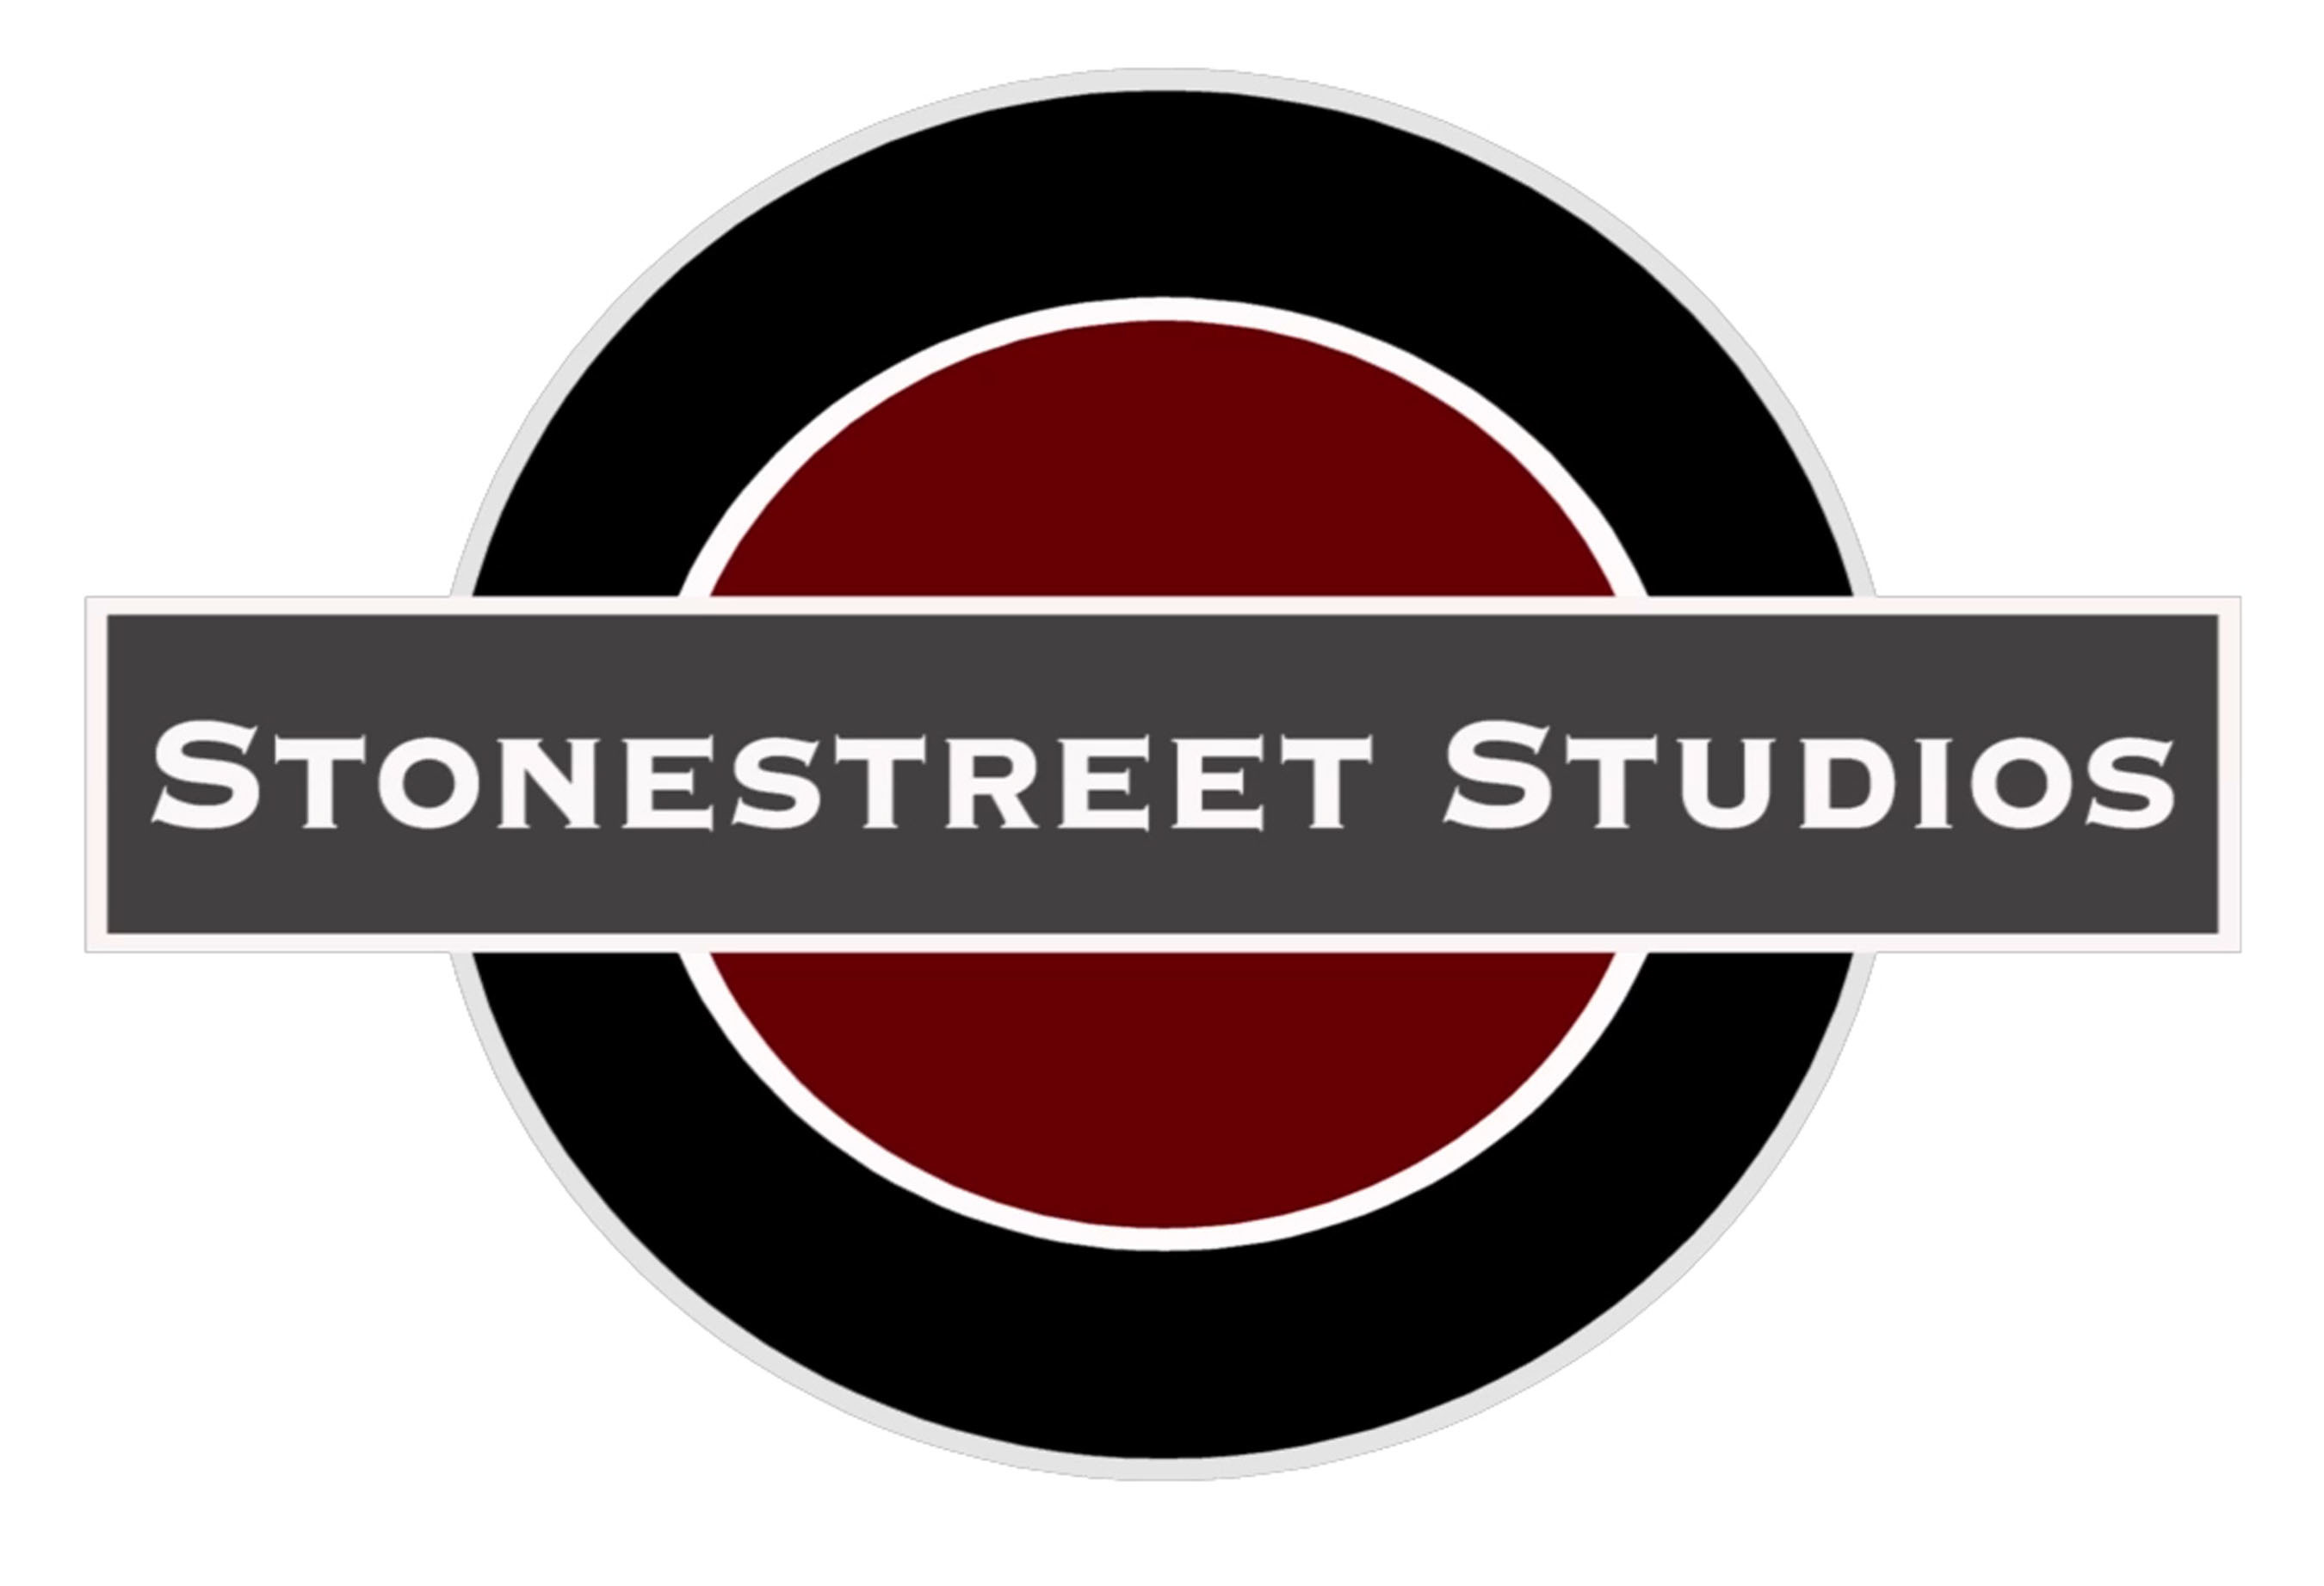 Stonestreet Studios Presents A 'Millennial' Focus For Its 24th Year Lineup of Independent Films, Pilots & Series